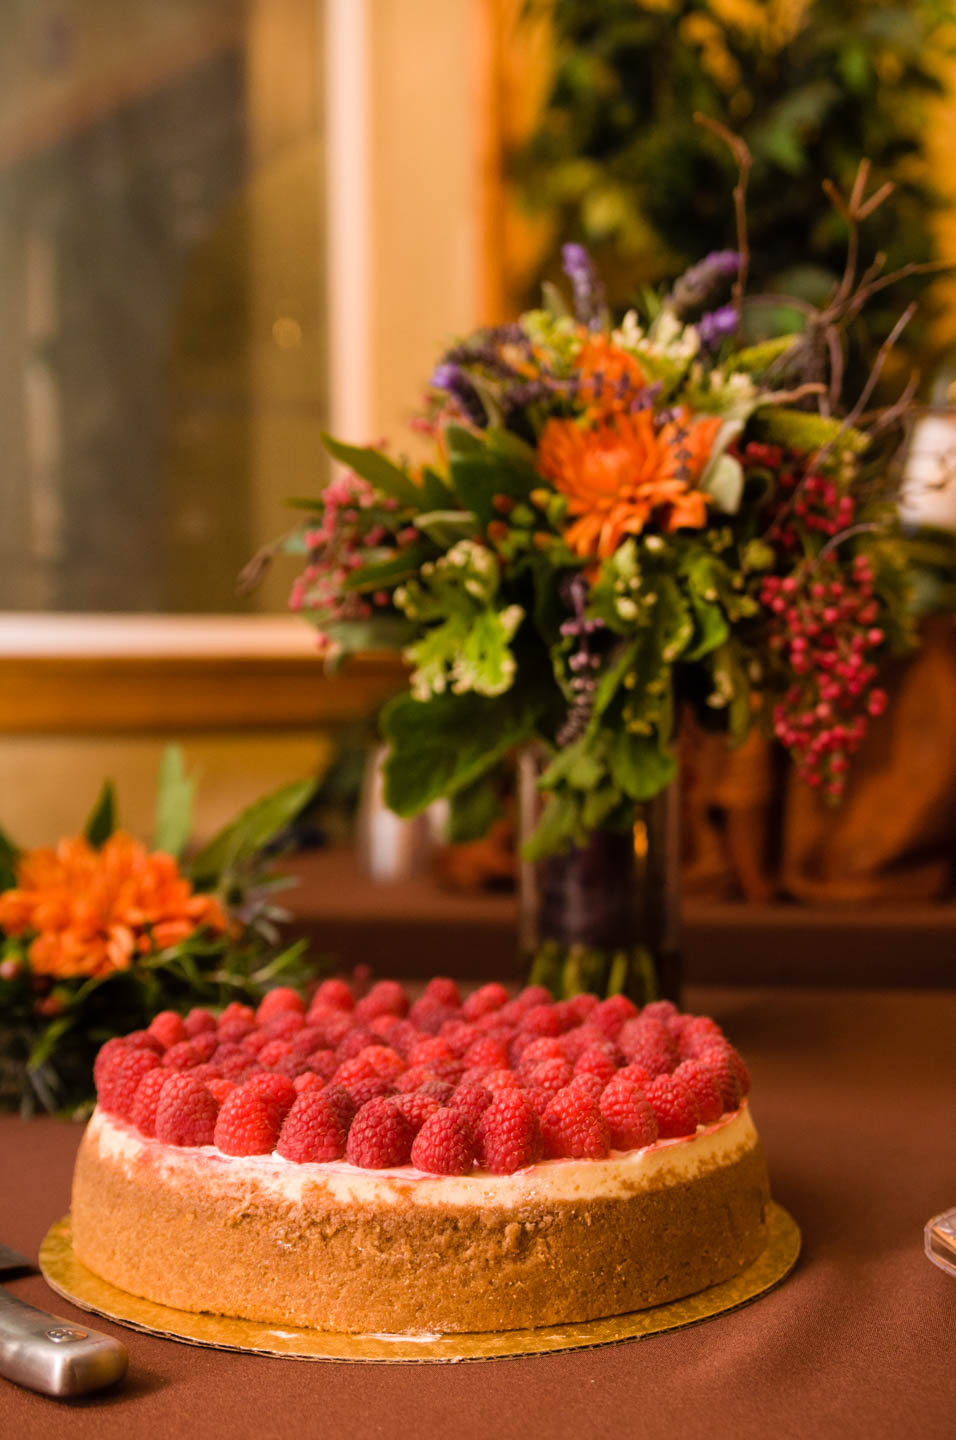 Raspberry cheesecake for the wedding cake